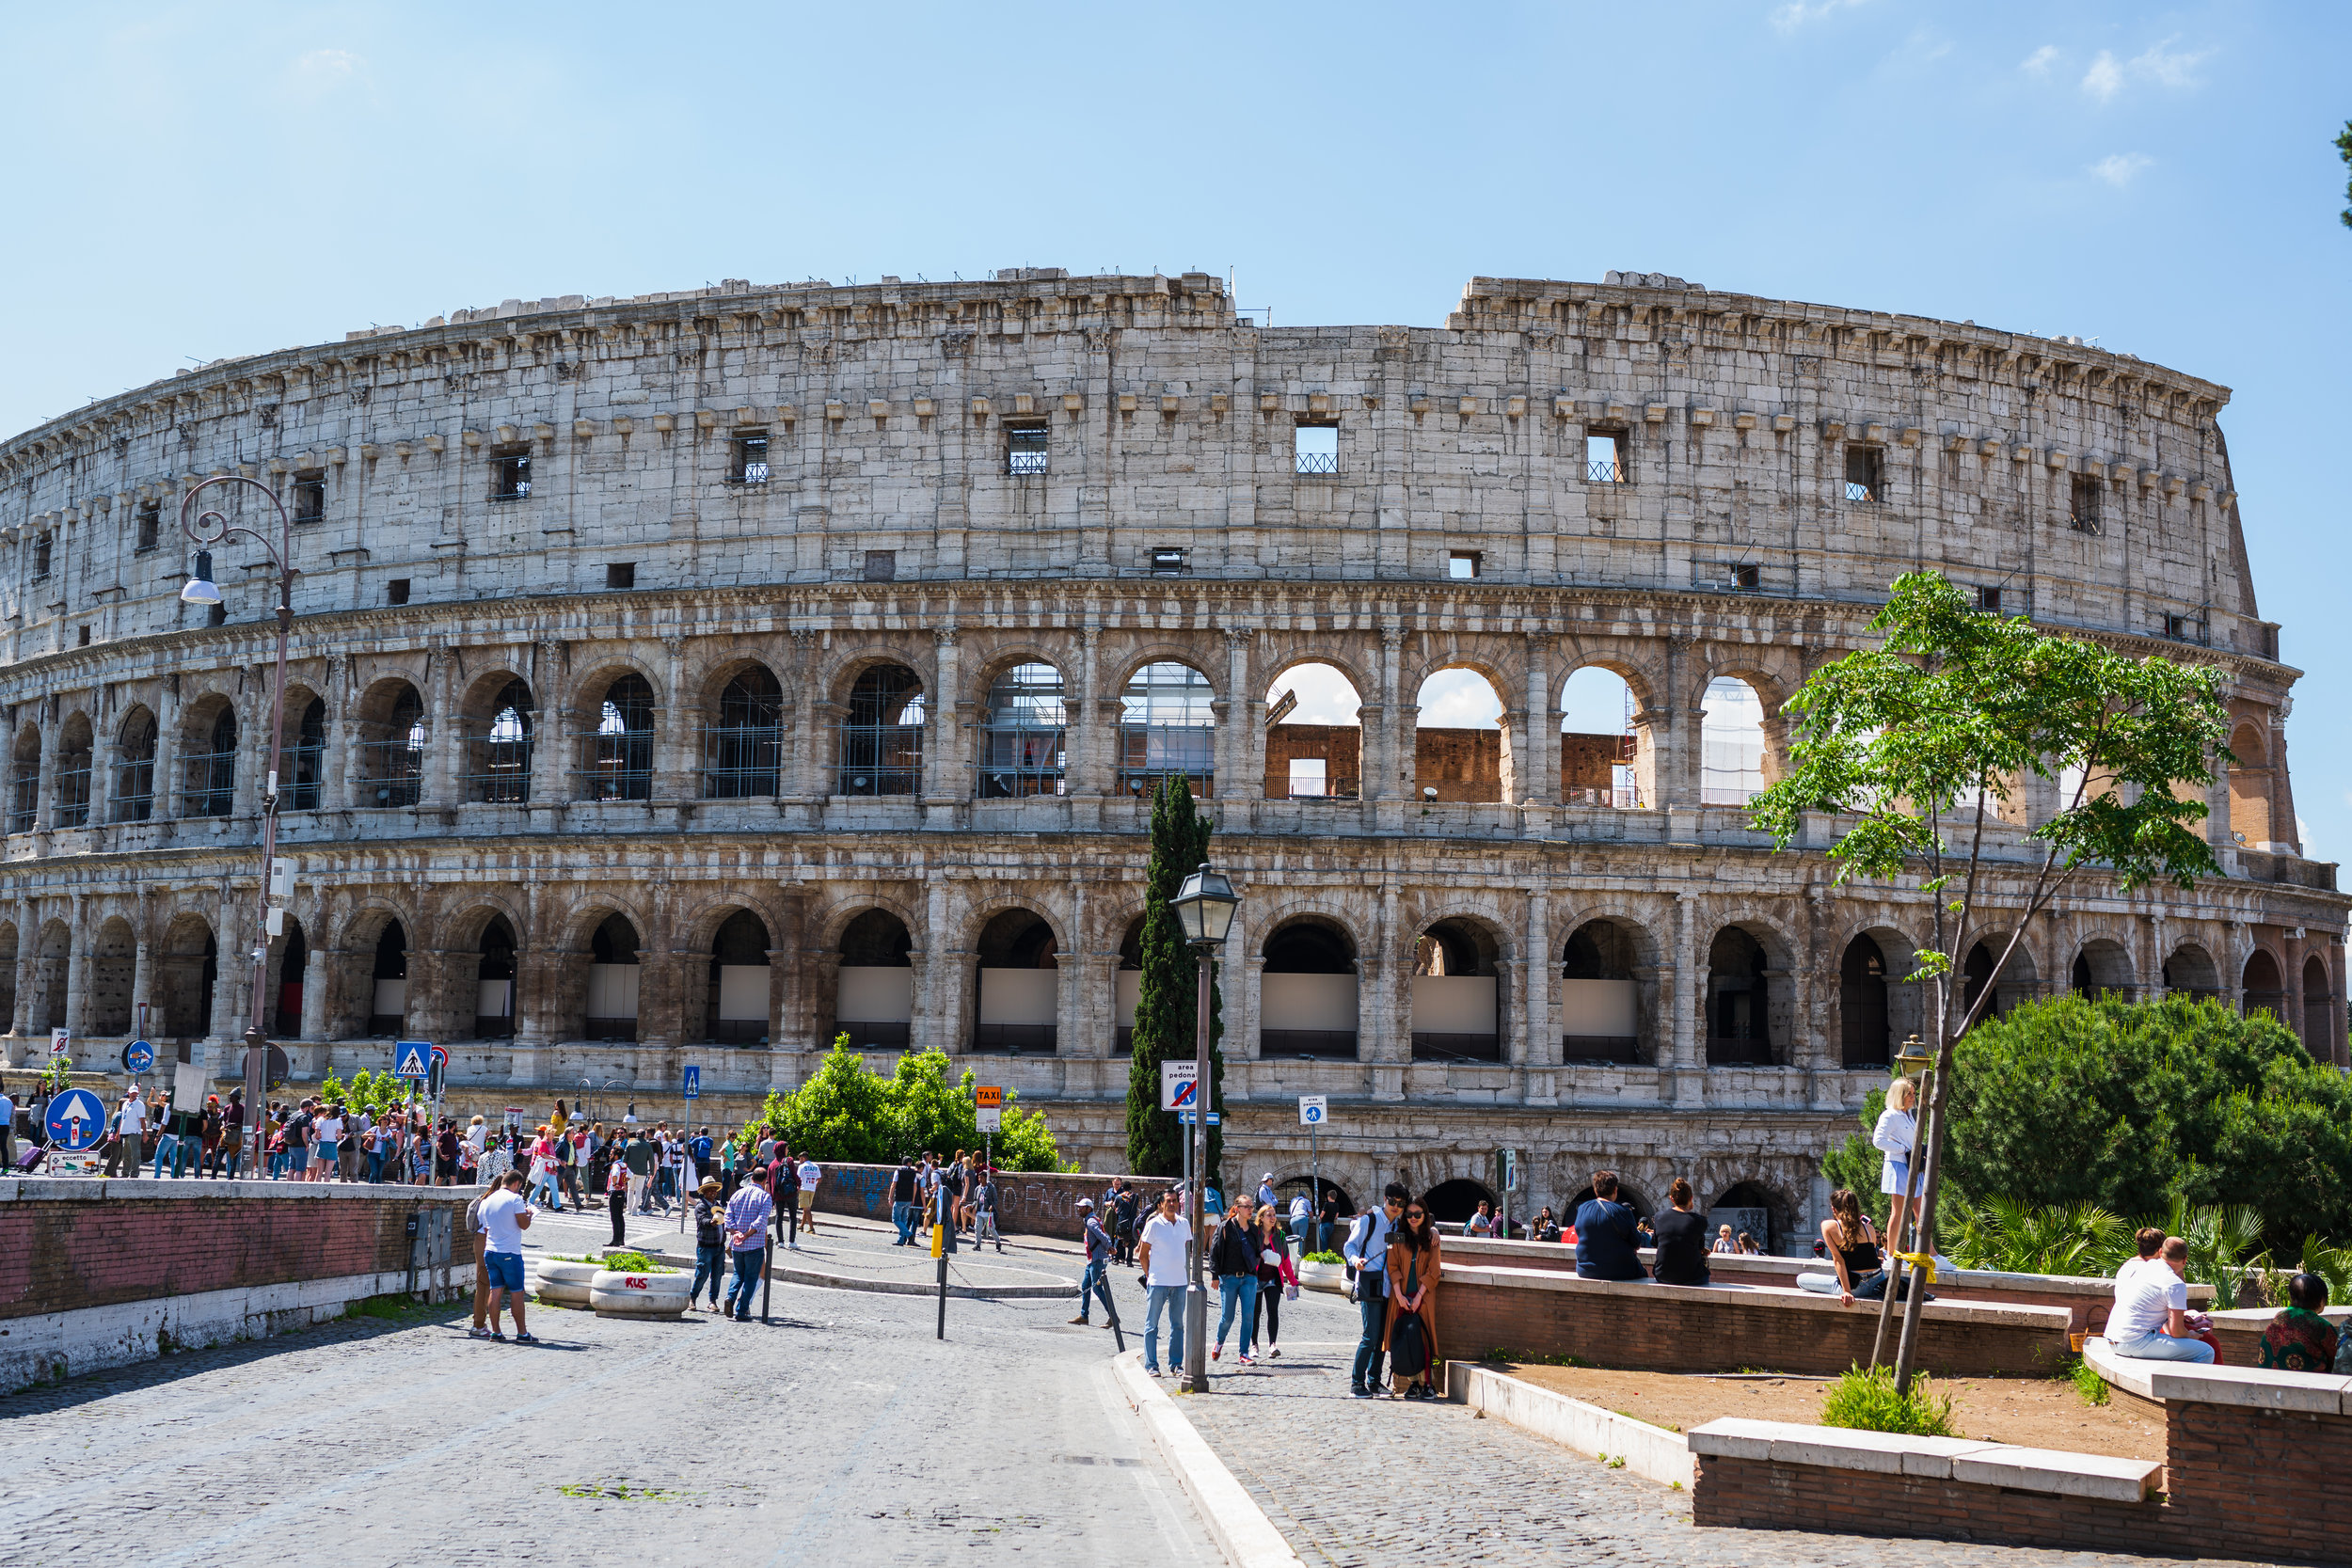 Our first look at the beautiful Colosseum!